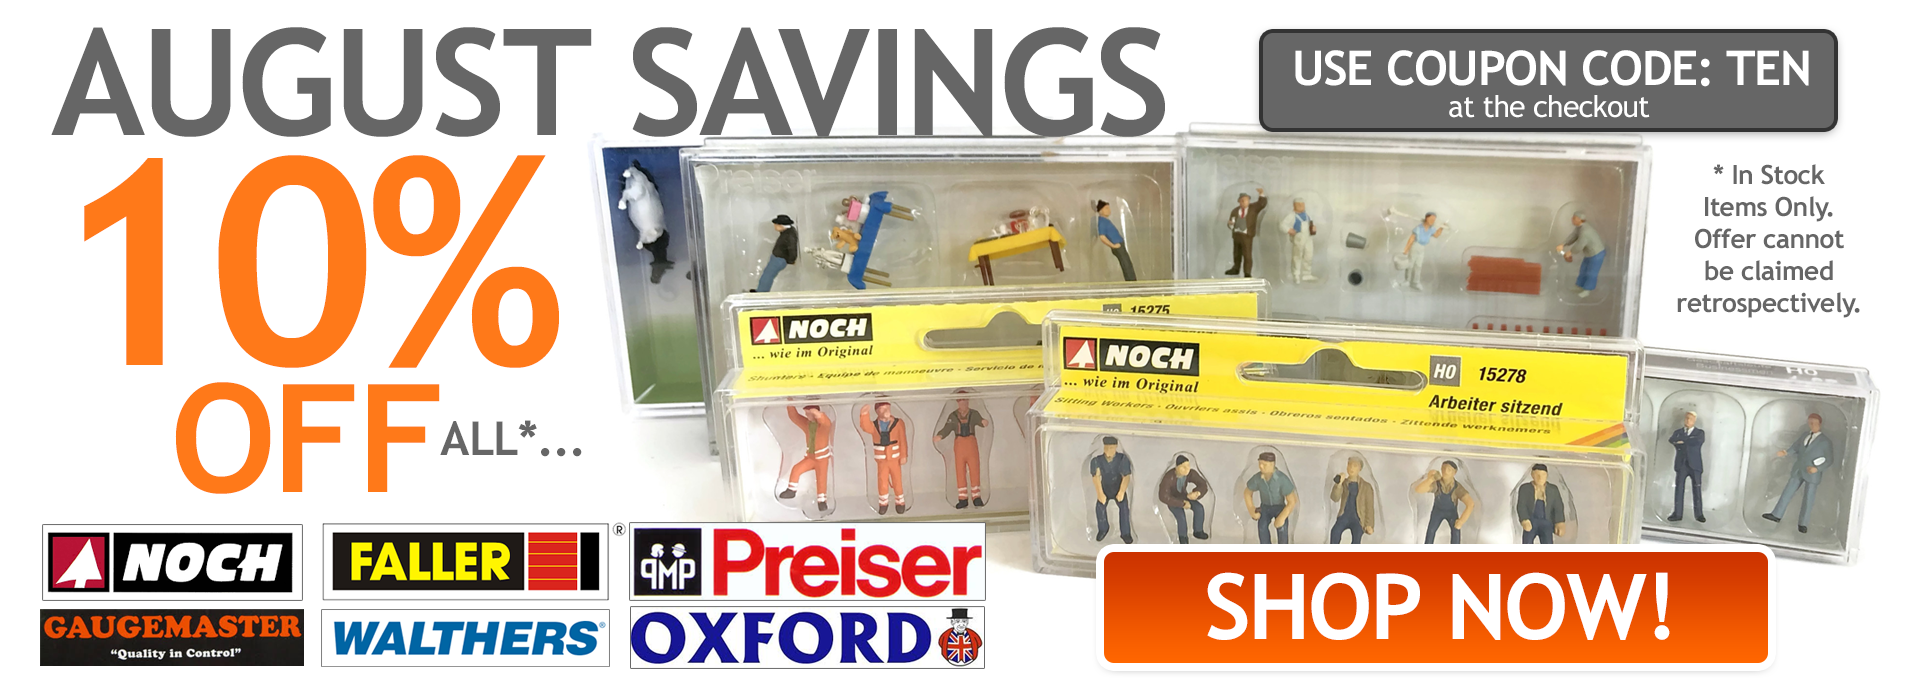 Save 10% on all Noch, Preiser & Faller Products This August!